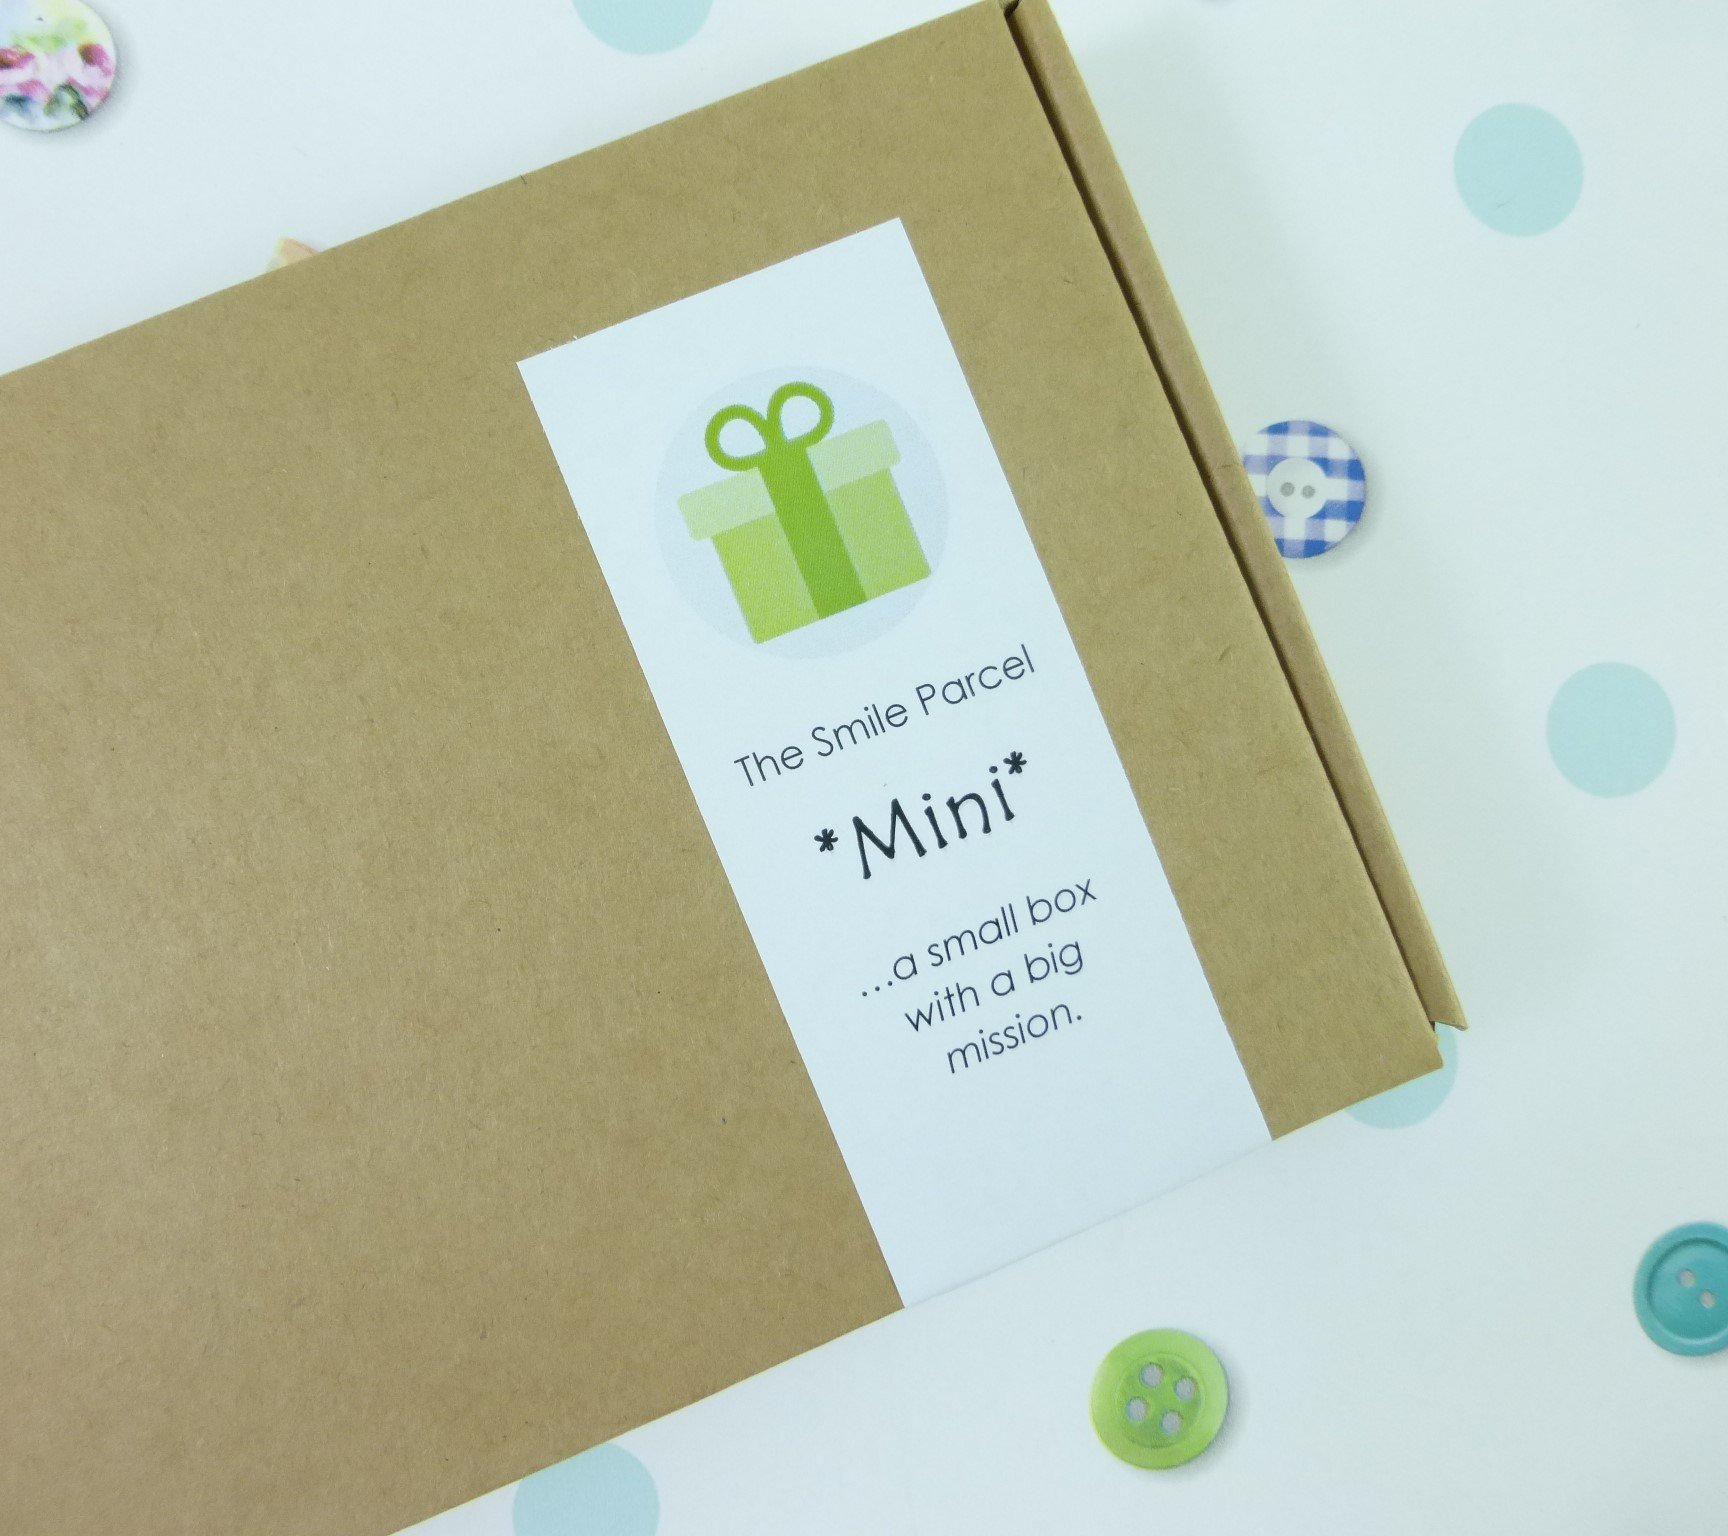 The Smile Parcel Self Care Box Letterbox Friendly Gift